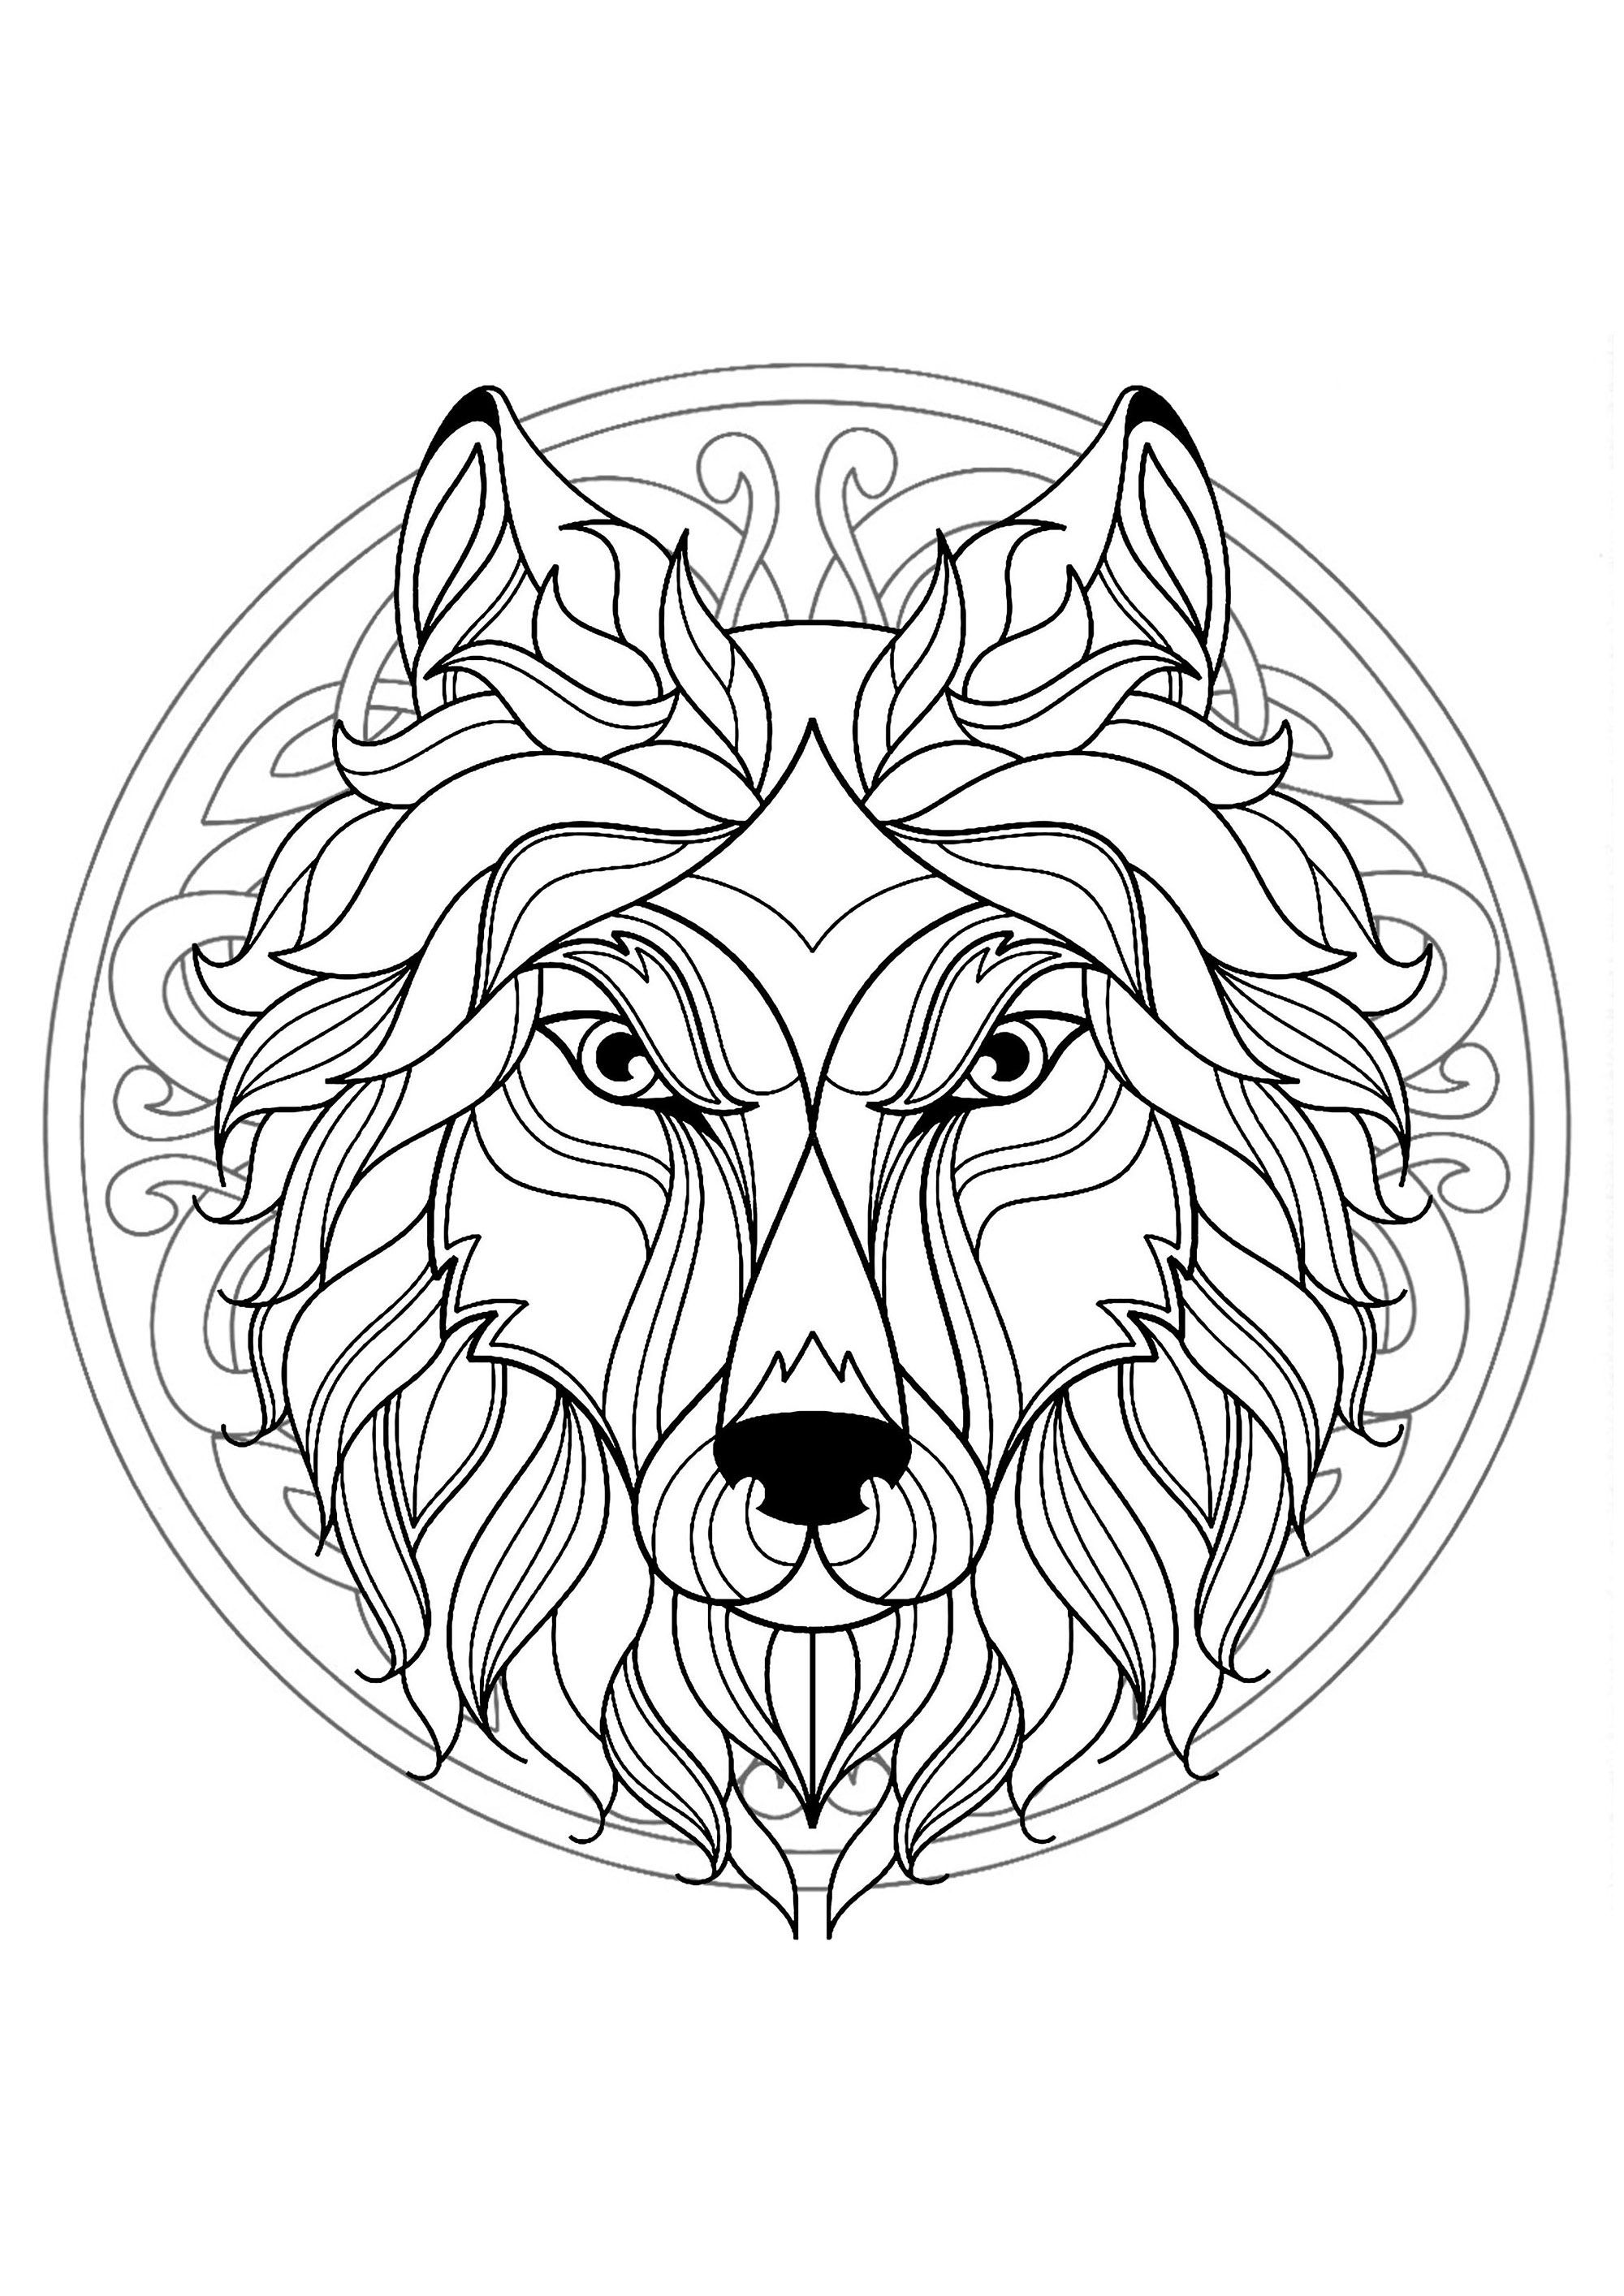 Here Are Difficult Mandalas Coloring Pages For Adults To Print For Free Mandala Is A Sanskrit Mandala Coloring Books Lion Coloring Pages Animal Coloring Pages